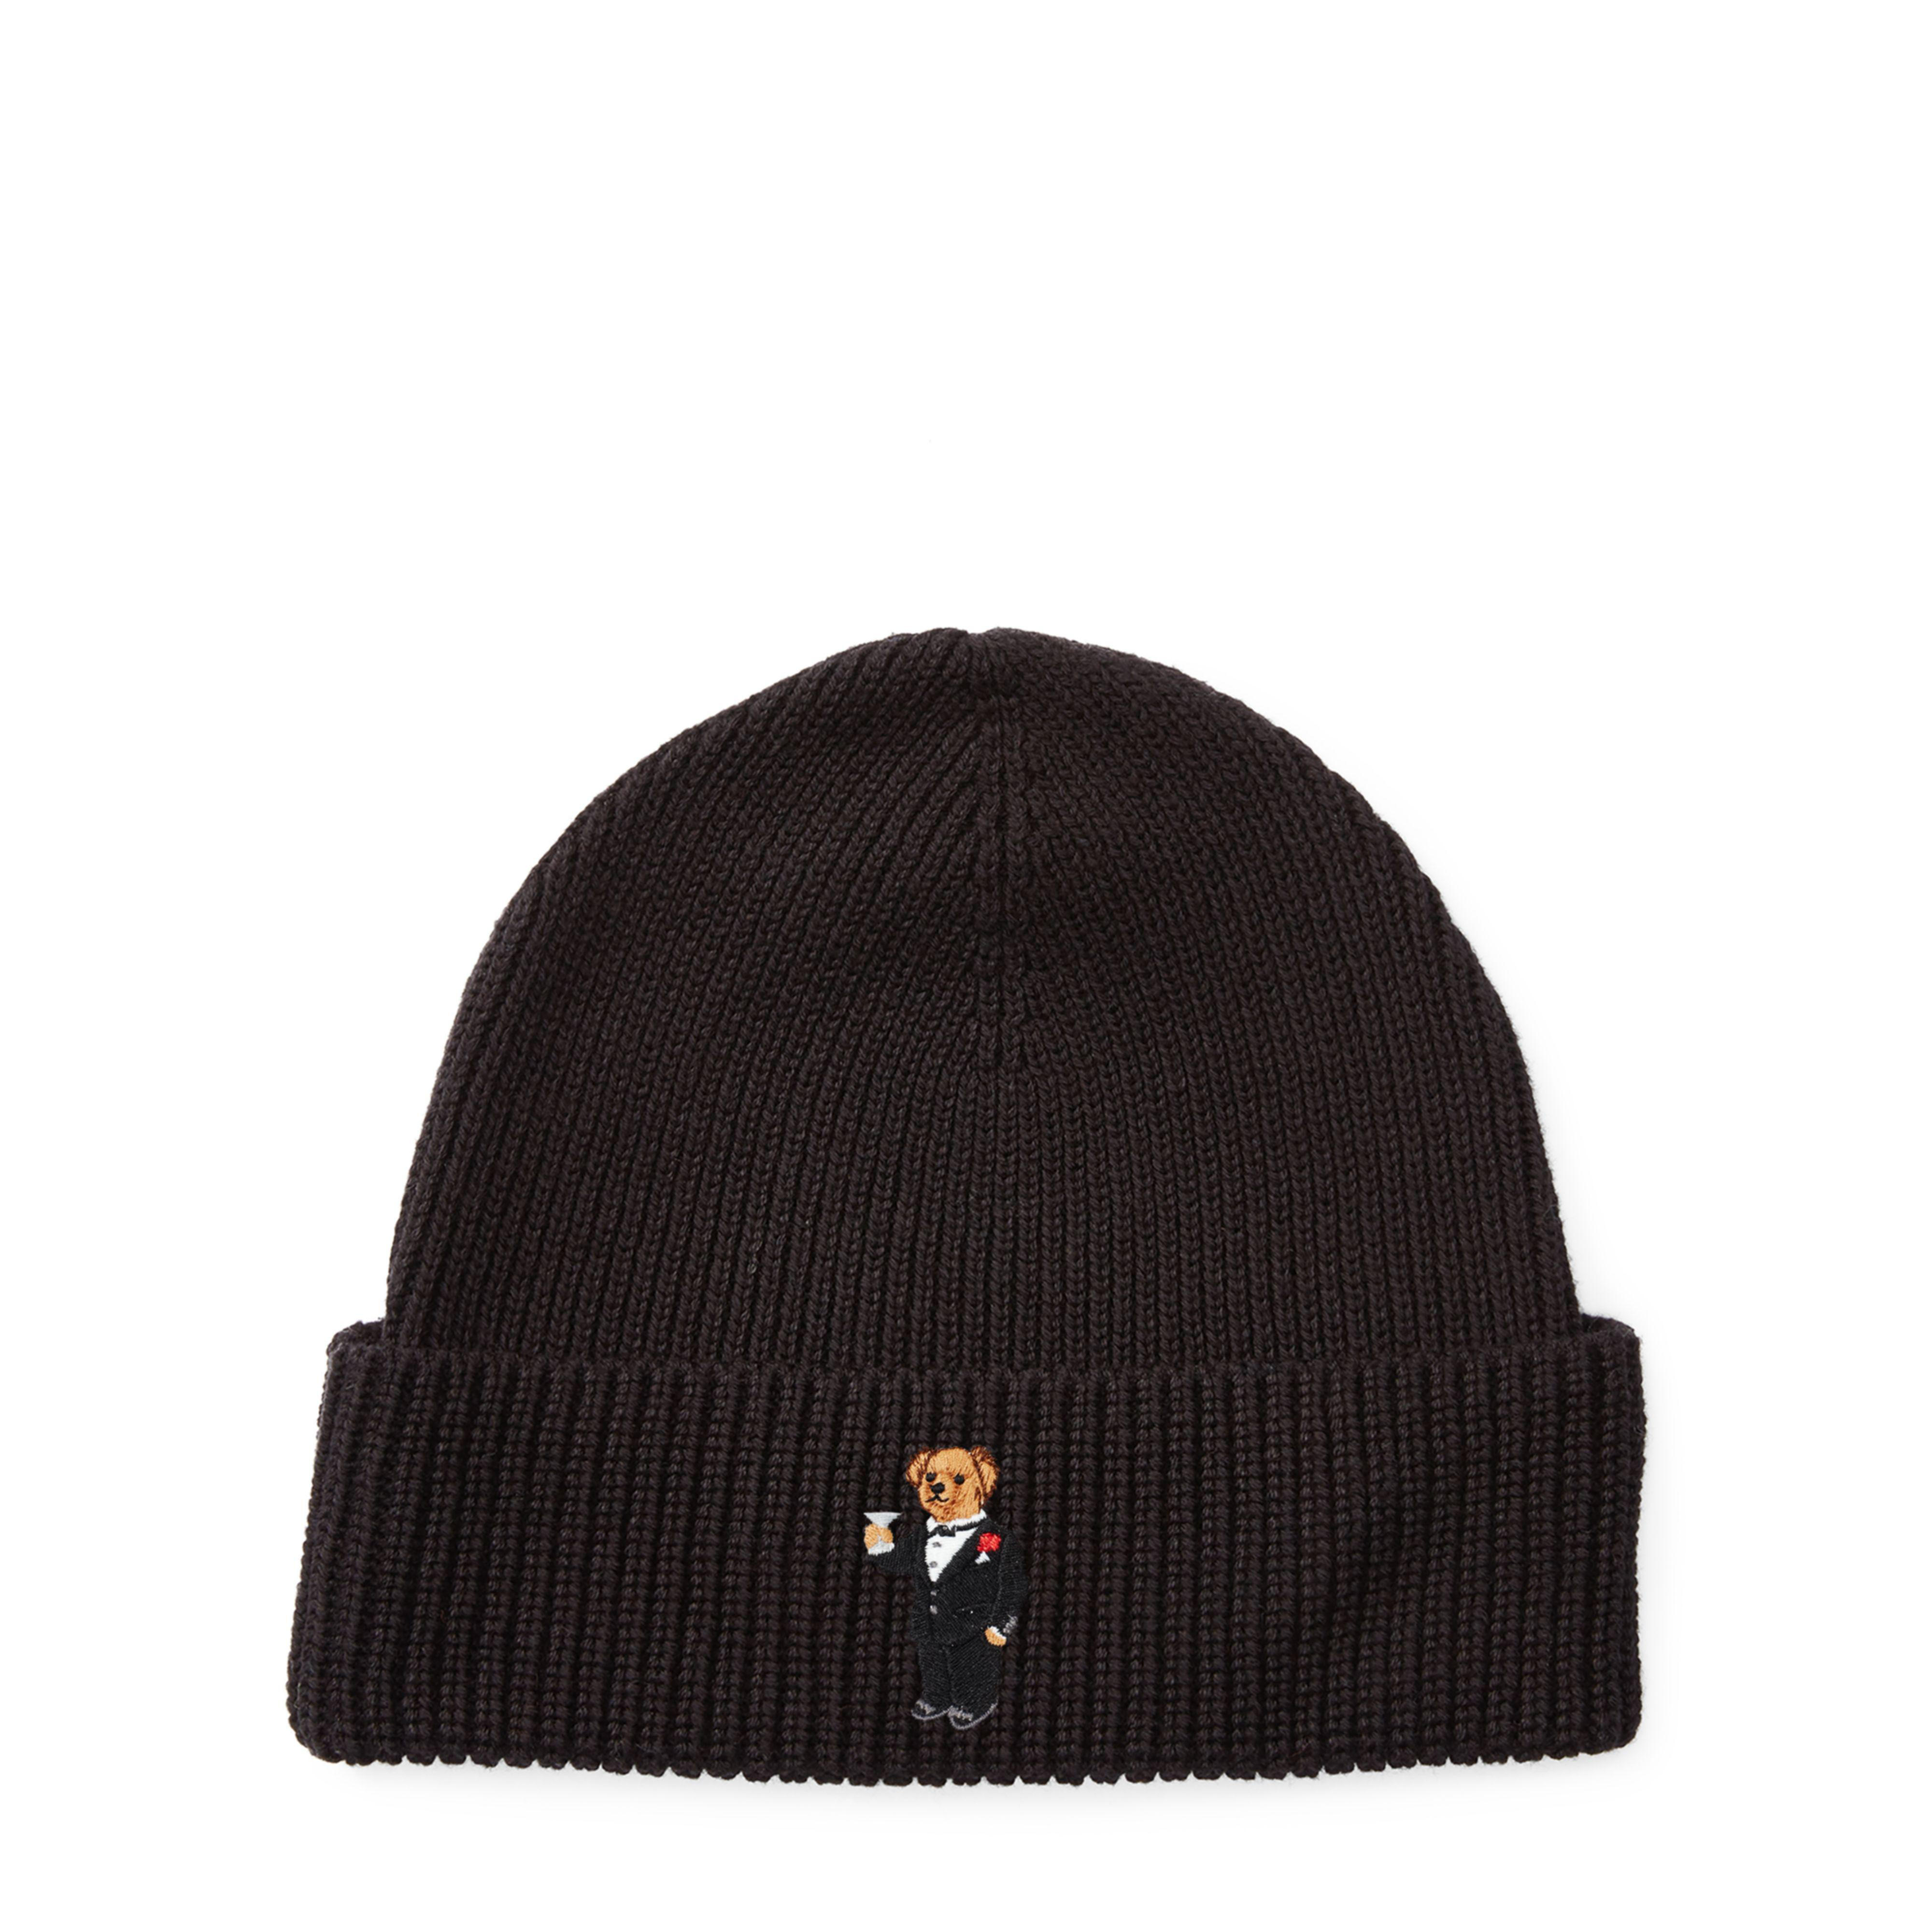 a2ad12f9b22 Lyst - Polo Ralph Lauren Martini Polo Bear Ribbed Hat in Black for Men